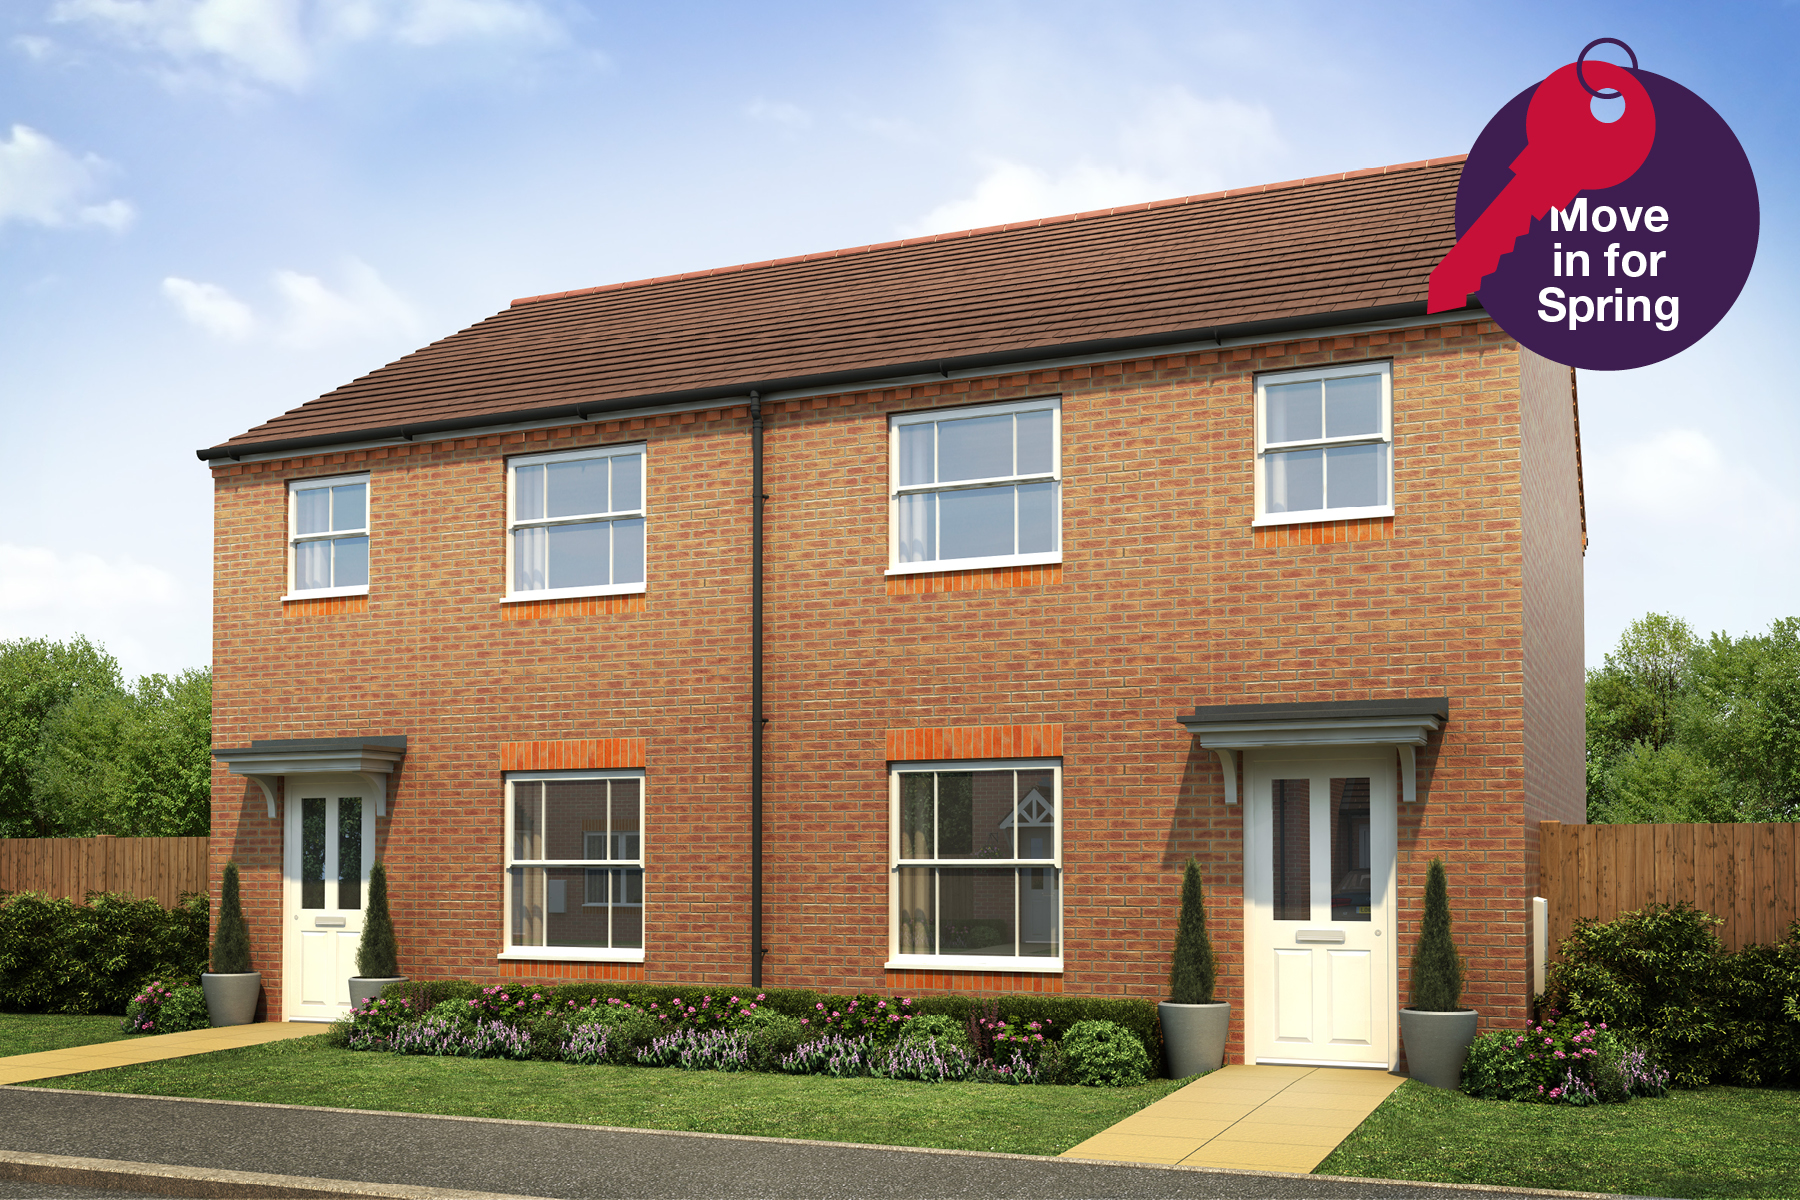 Willmott Fields - Plot 31 Flatford Move In for Spring Graphic